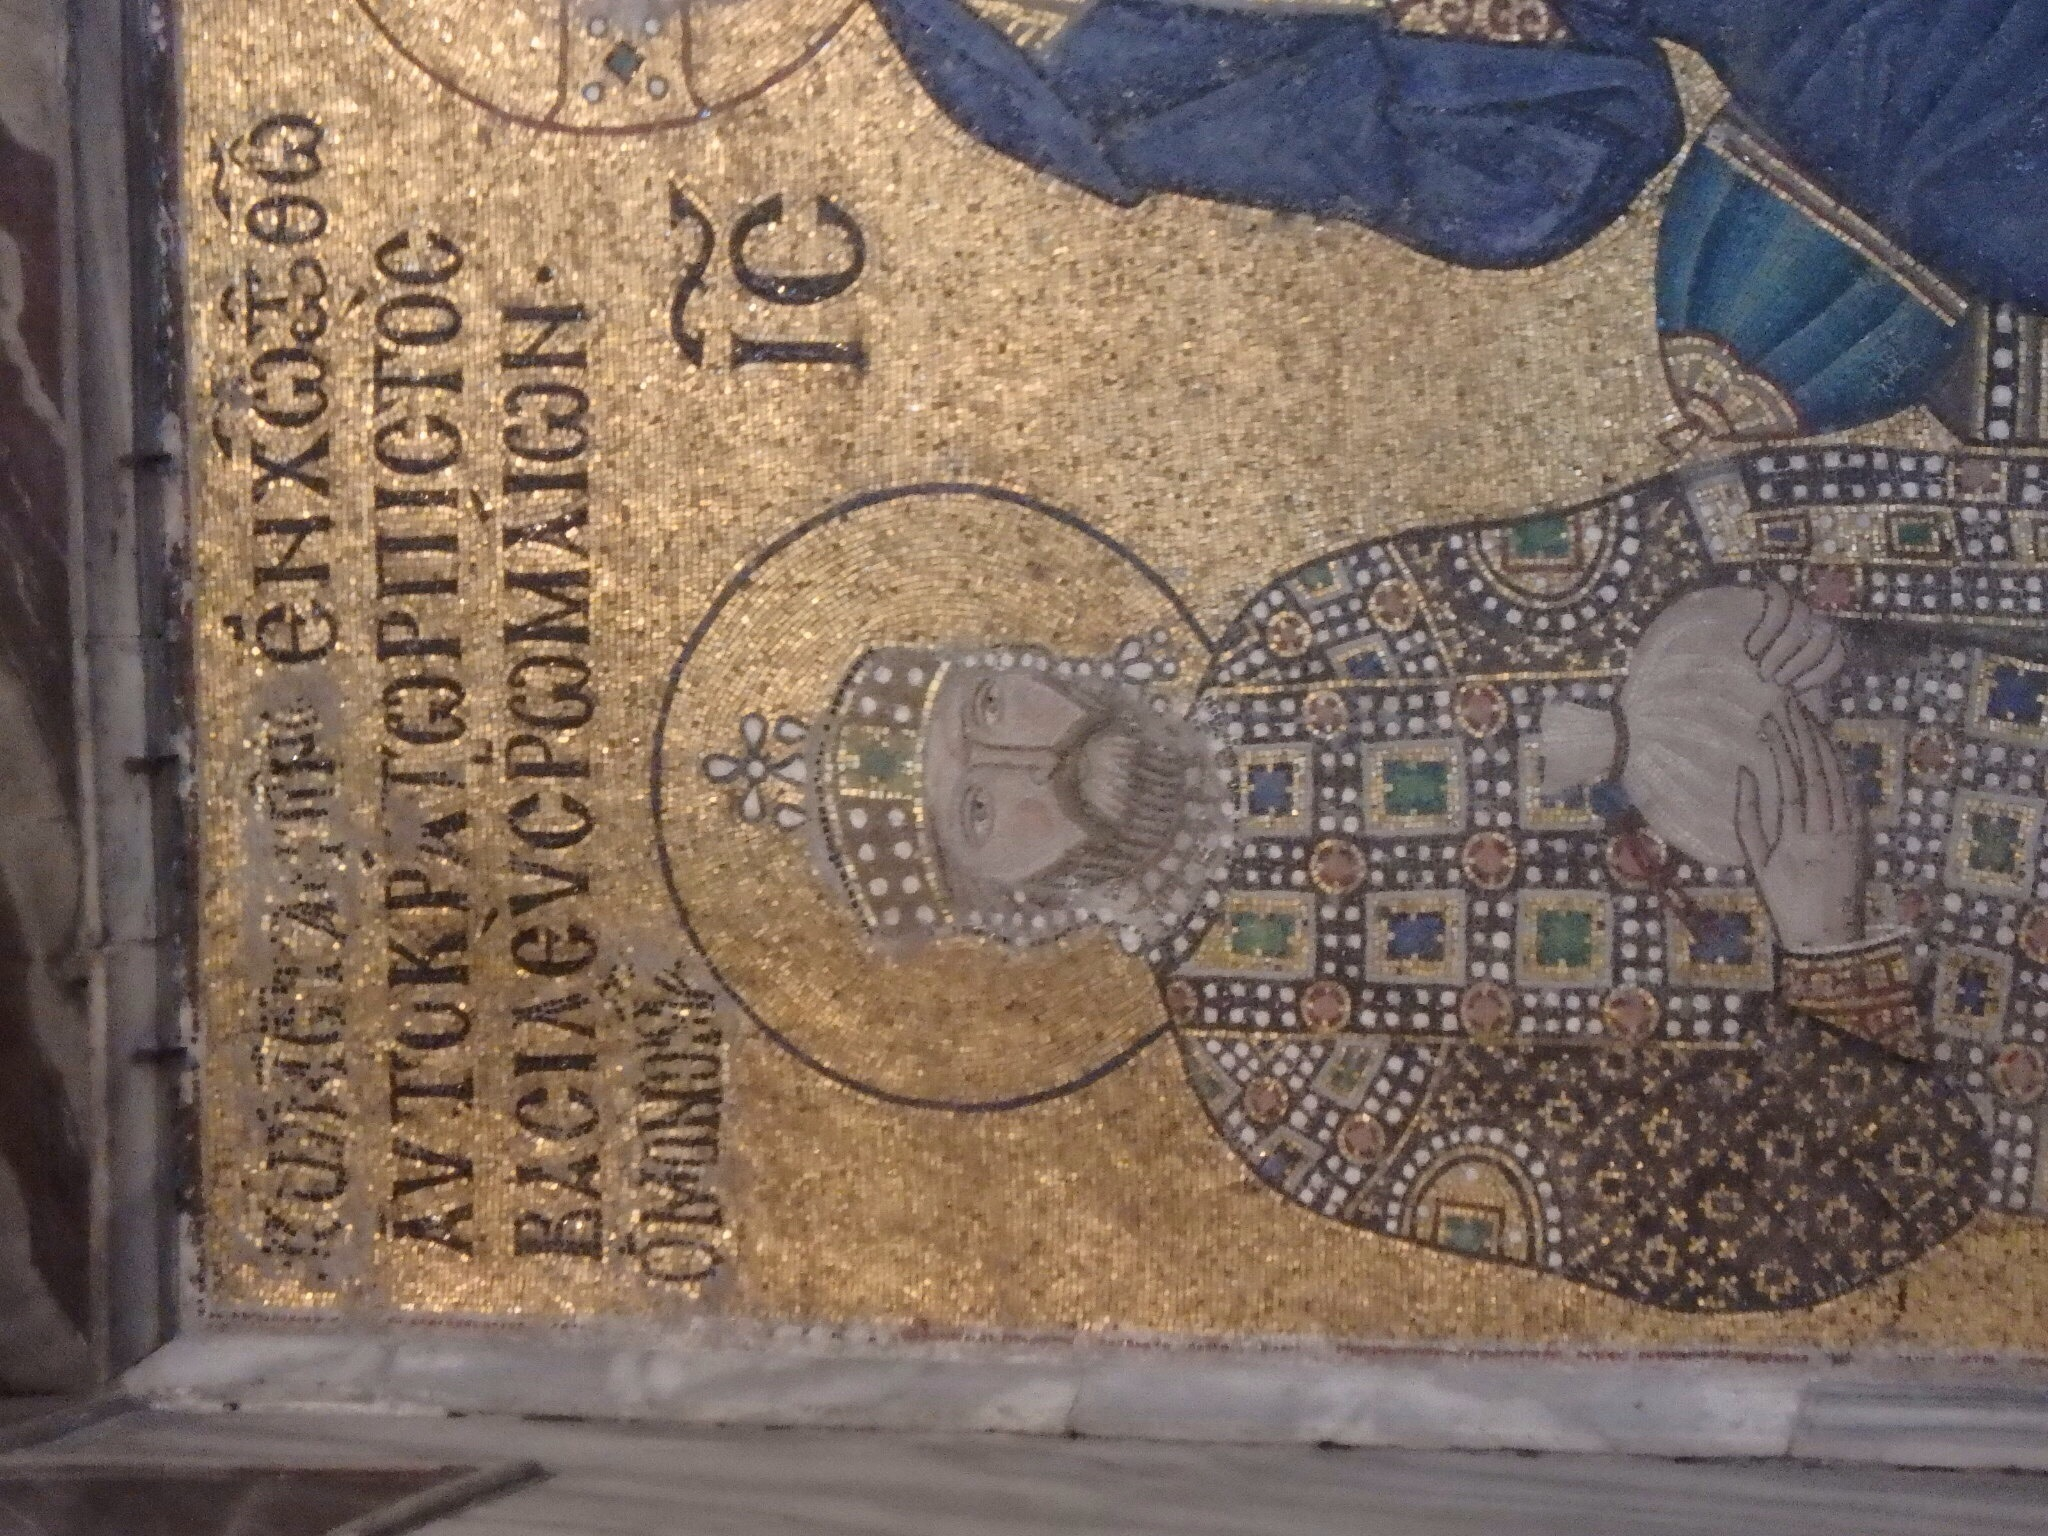 """""""I've got a blank space, baby, and I'll write your name."""" Taylor Swift's hit song has nothing on Empress Zoe. This mosaic shows her husbands - I put it in the plural due to her multiple (monogamous) marriages. Instead of redoing the mosaic with the face of her new betrothed, the artist simply redid the name and title over the man's face - you can see how it the work looks a little sloppy above the man's head."""